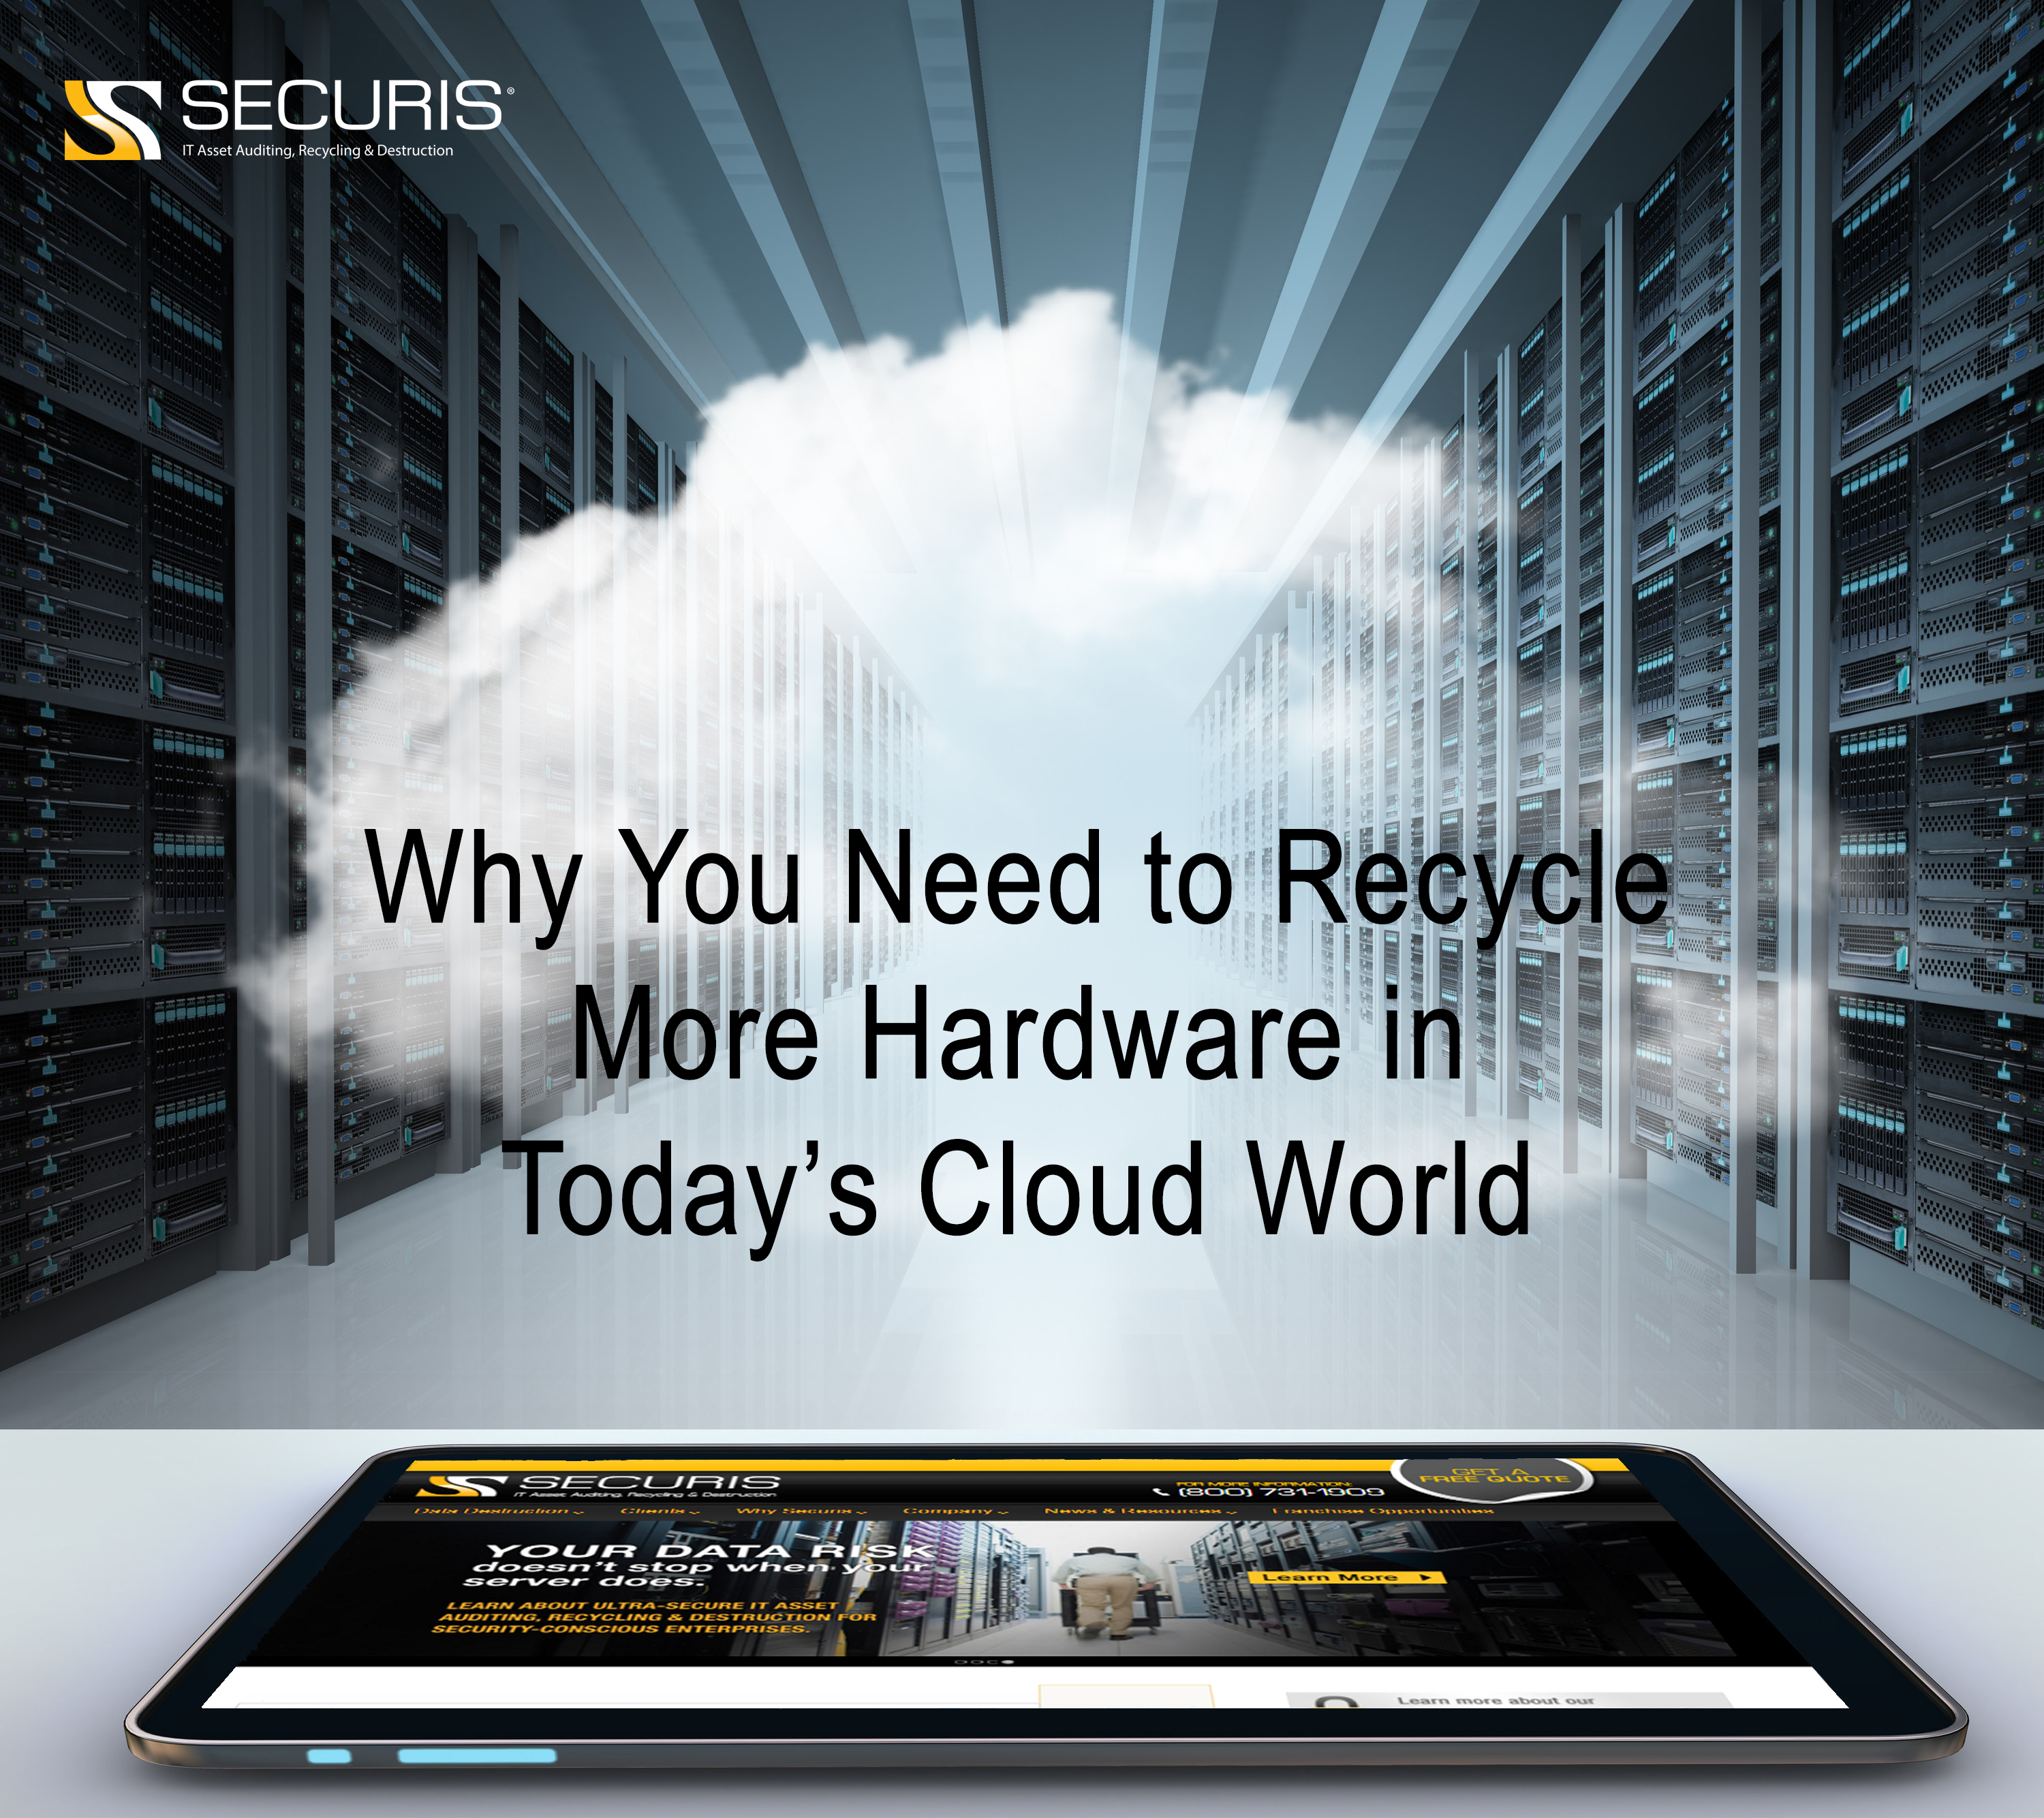 Recycle Hardware in Today's Cloud World